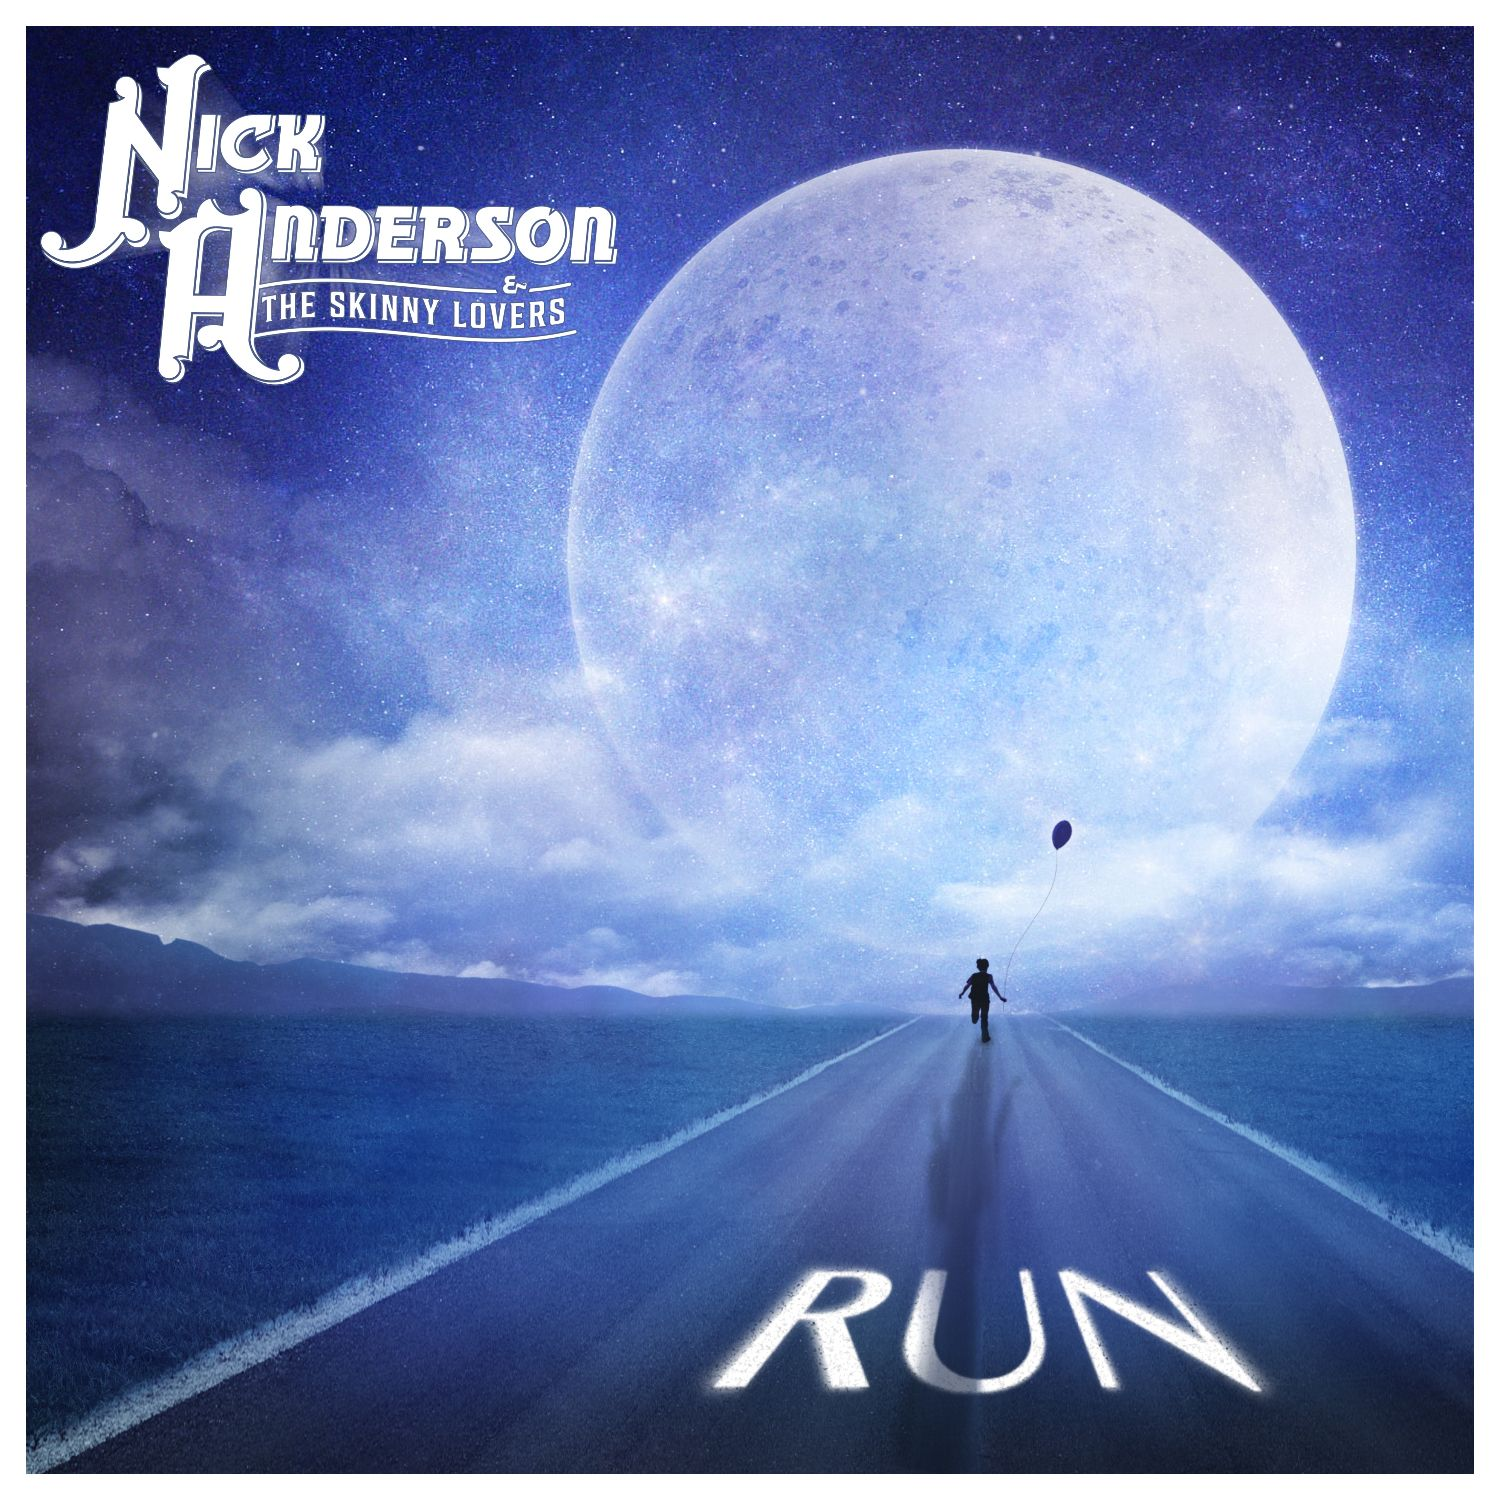 Nick Anderson and The Skinny Lovers – Run